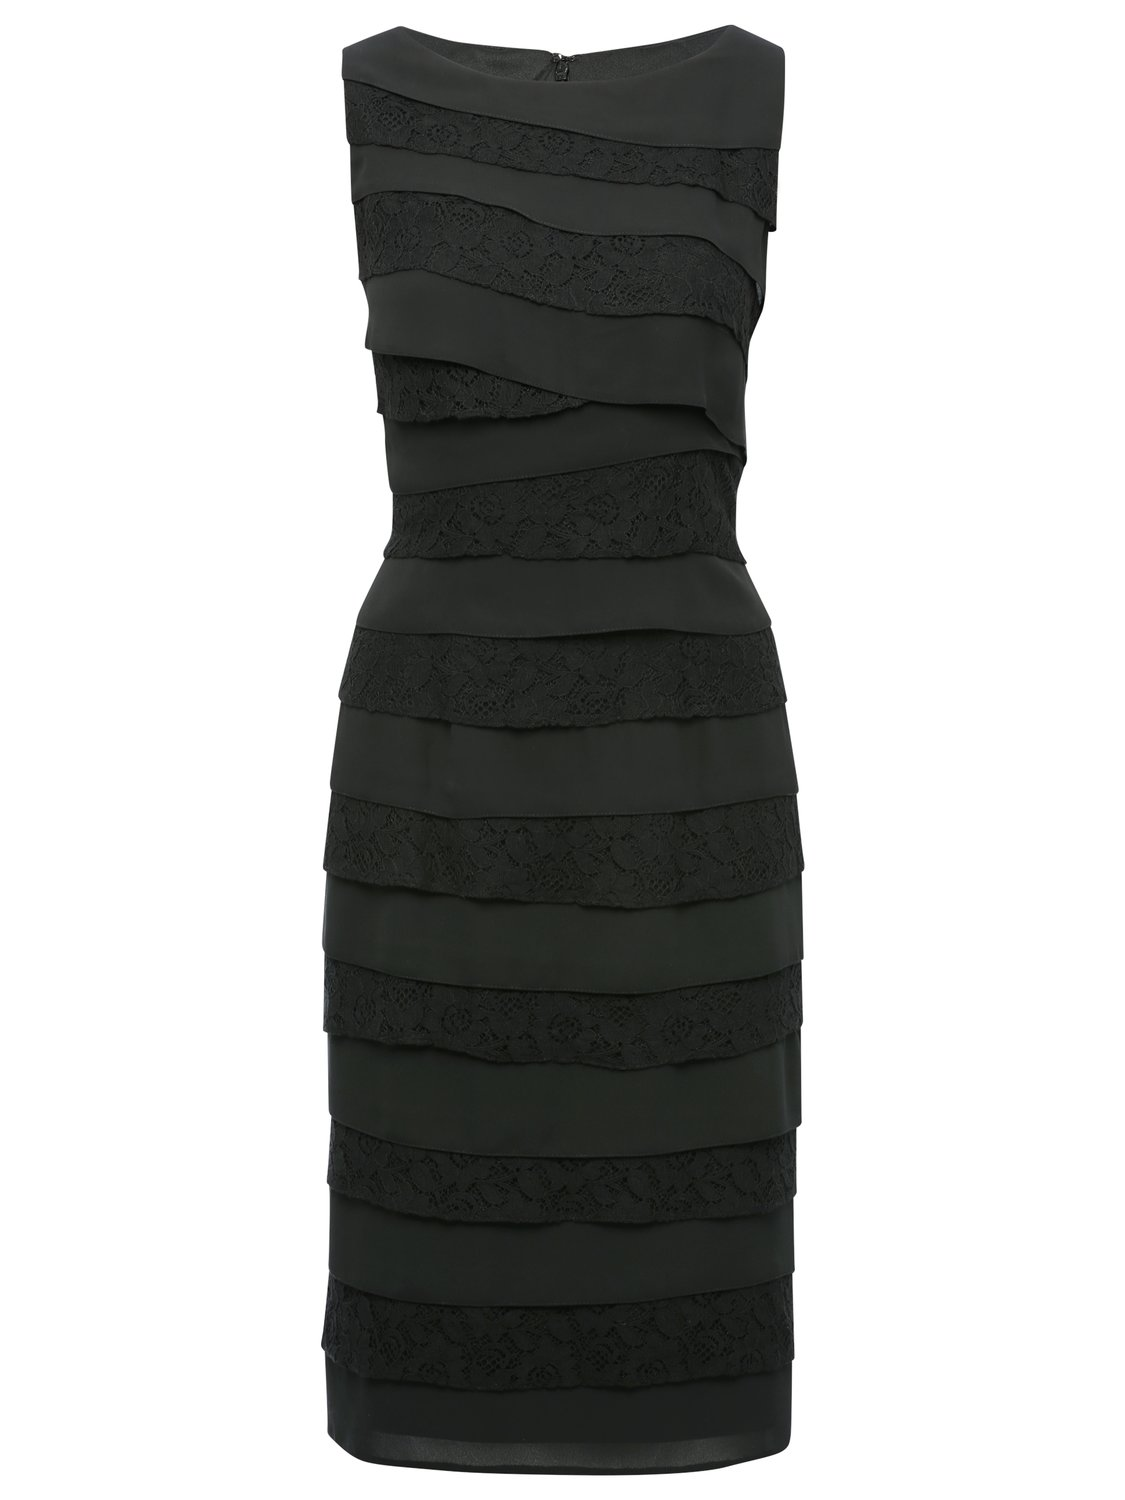 Womens Ladies Boutique classic sleeveless high neck layered Lace shutter pencil shift dress